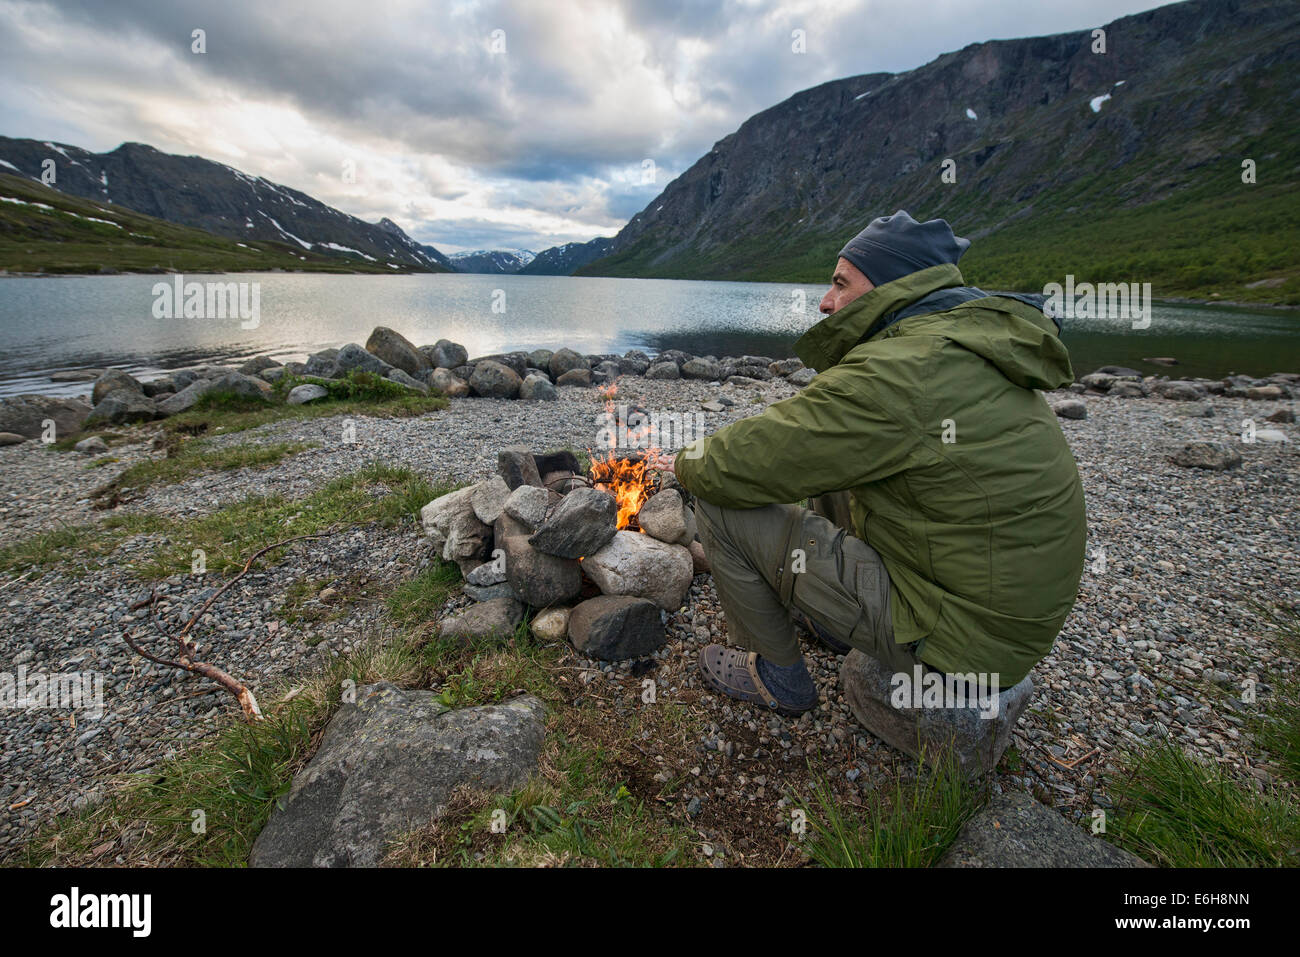 sitting by the fire in Jotunheimen National Park, Norway - Stock Image